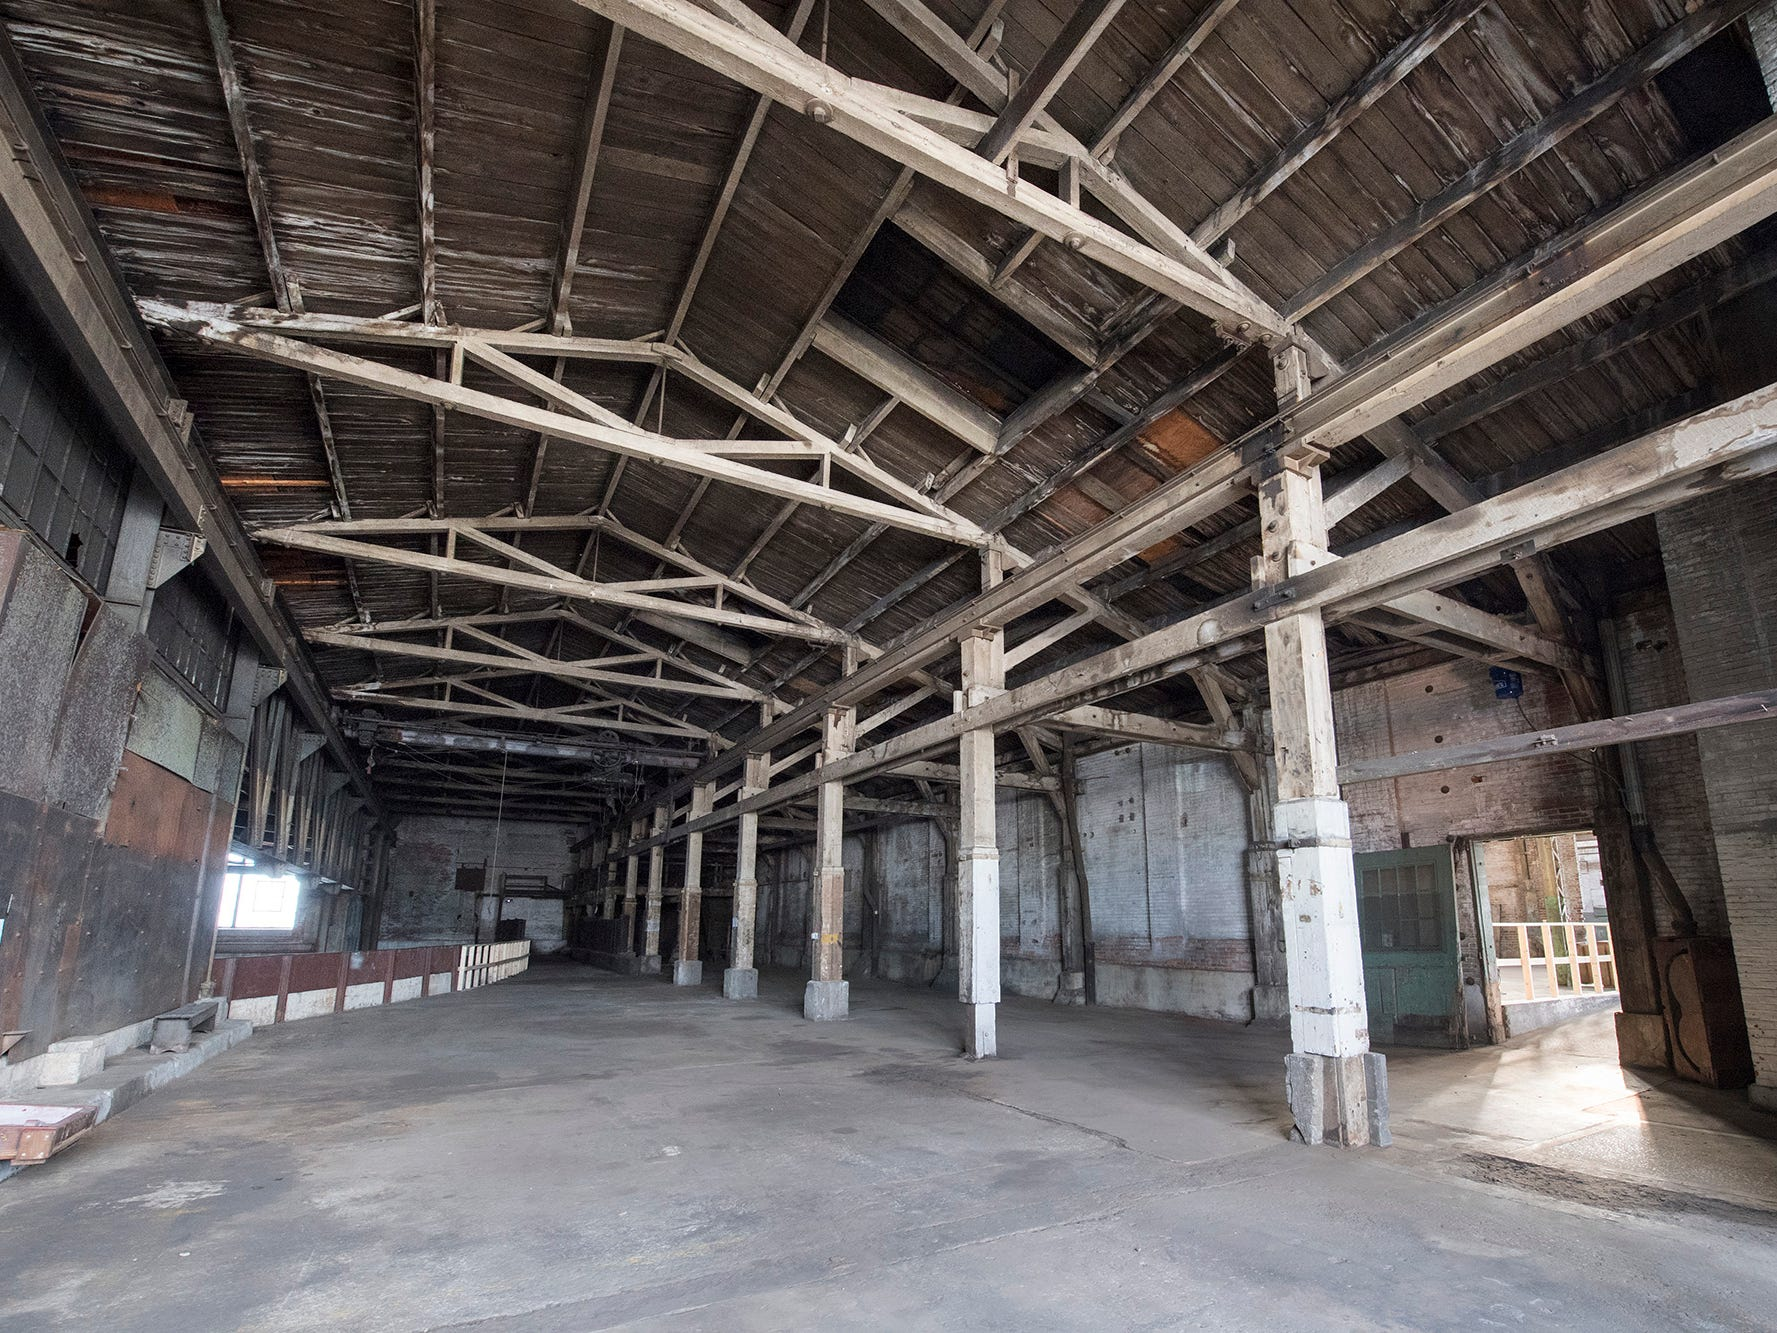 In the distance, a railroad spur enters the foundry building at 145 North Hartley Street in York. The 54,000-square-foot building has been gutted and refurbished however, no initial plans have been made for the site.